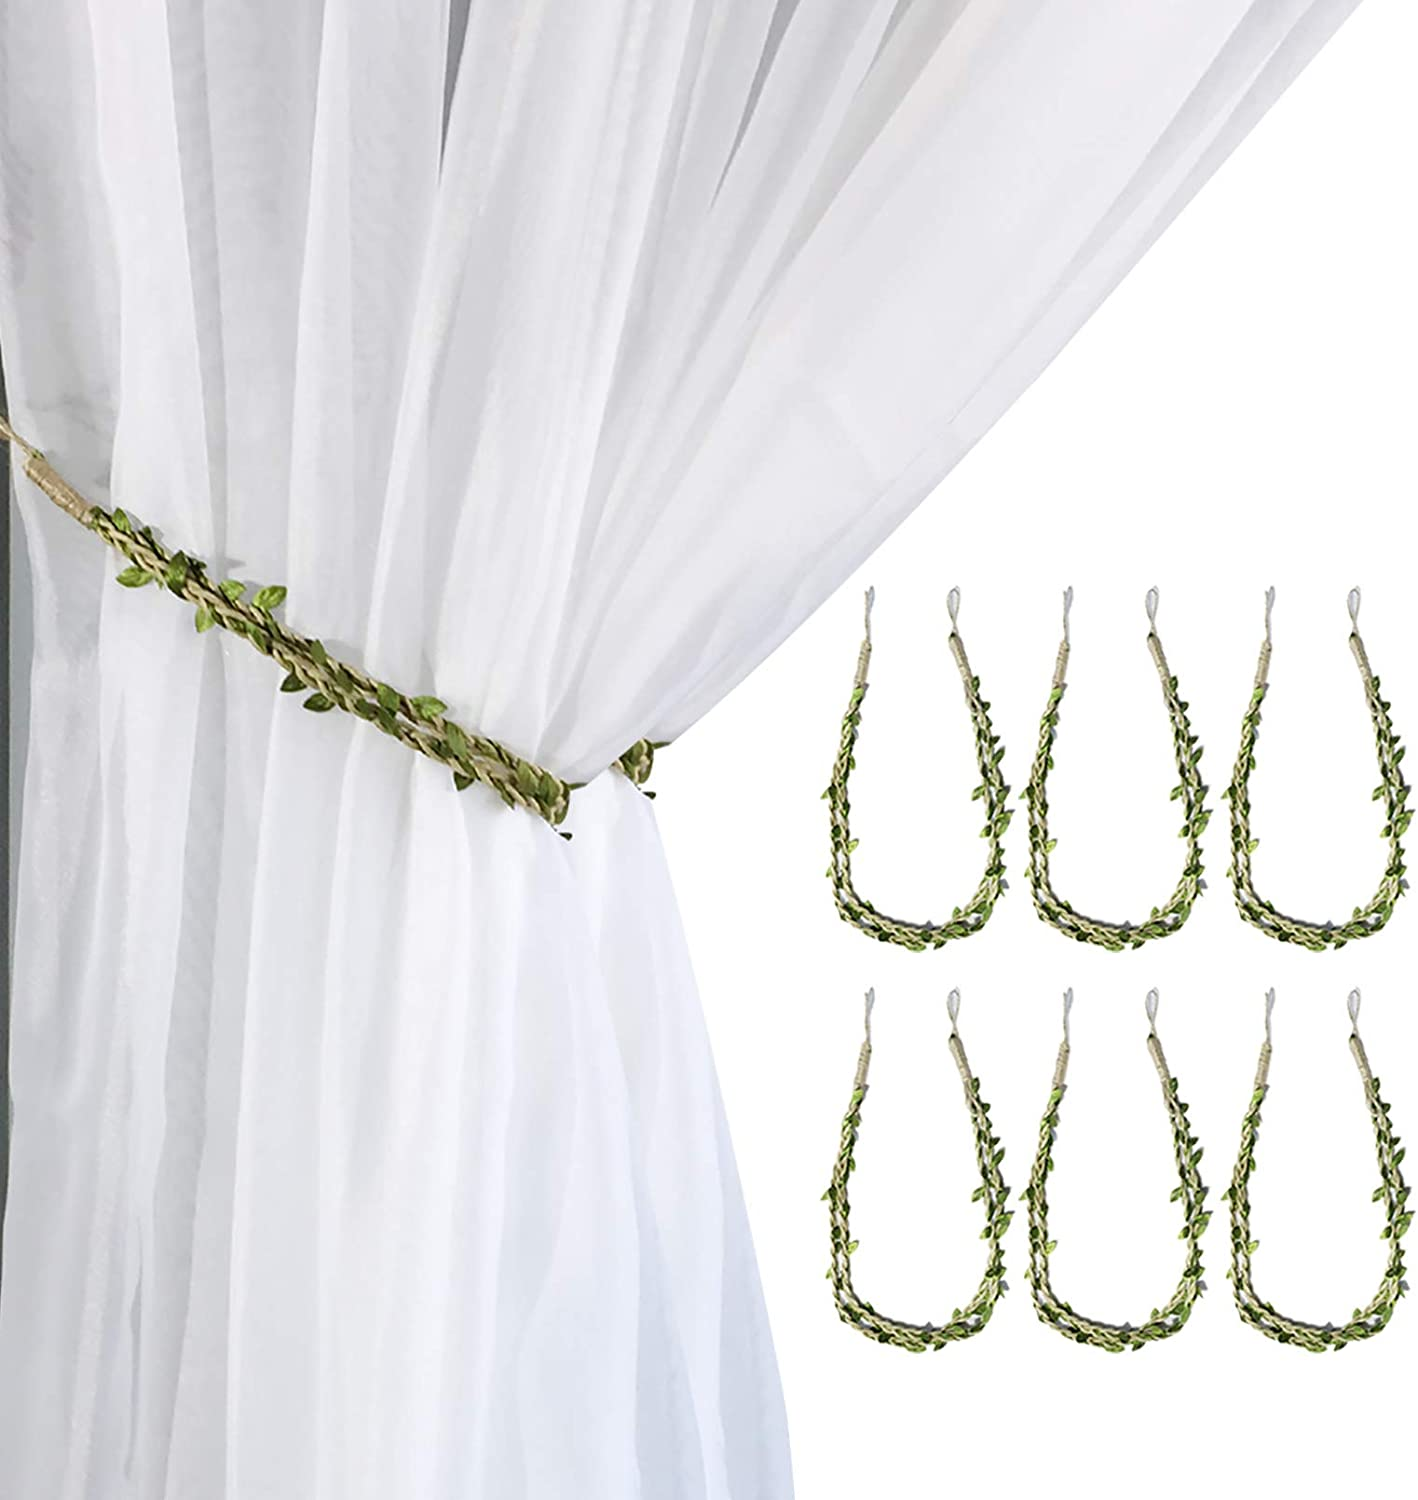 Valea Home Curtain Tiebacks Ropes Natural Burlap Rope Holdbacks with Artificial Vines Fake Foliage Ivy Leaf for Rustic Wedding Party Home Decorative Curtain Holders, Set of 6